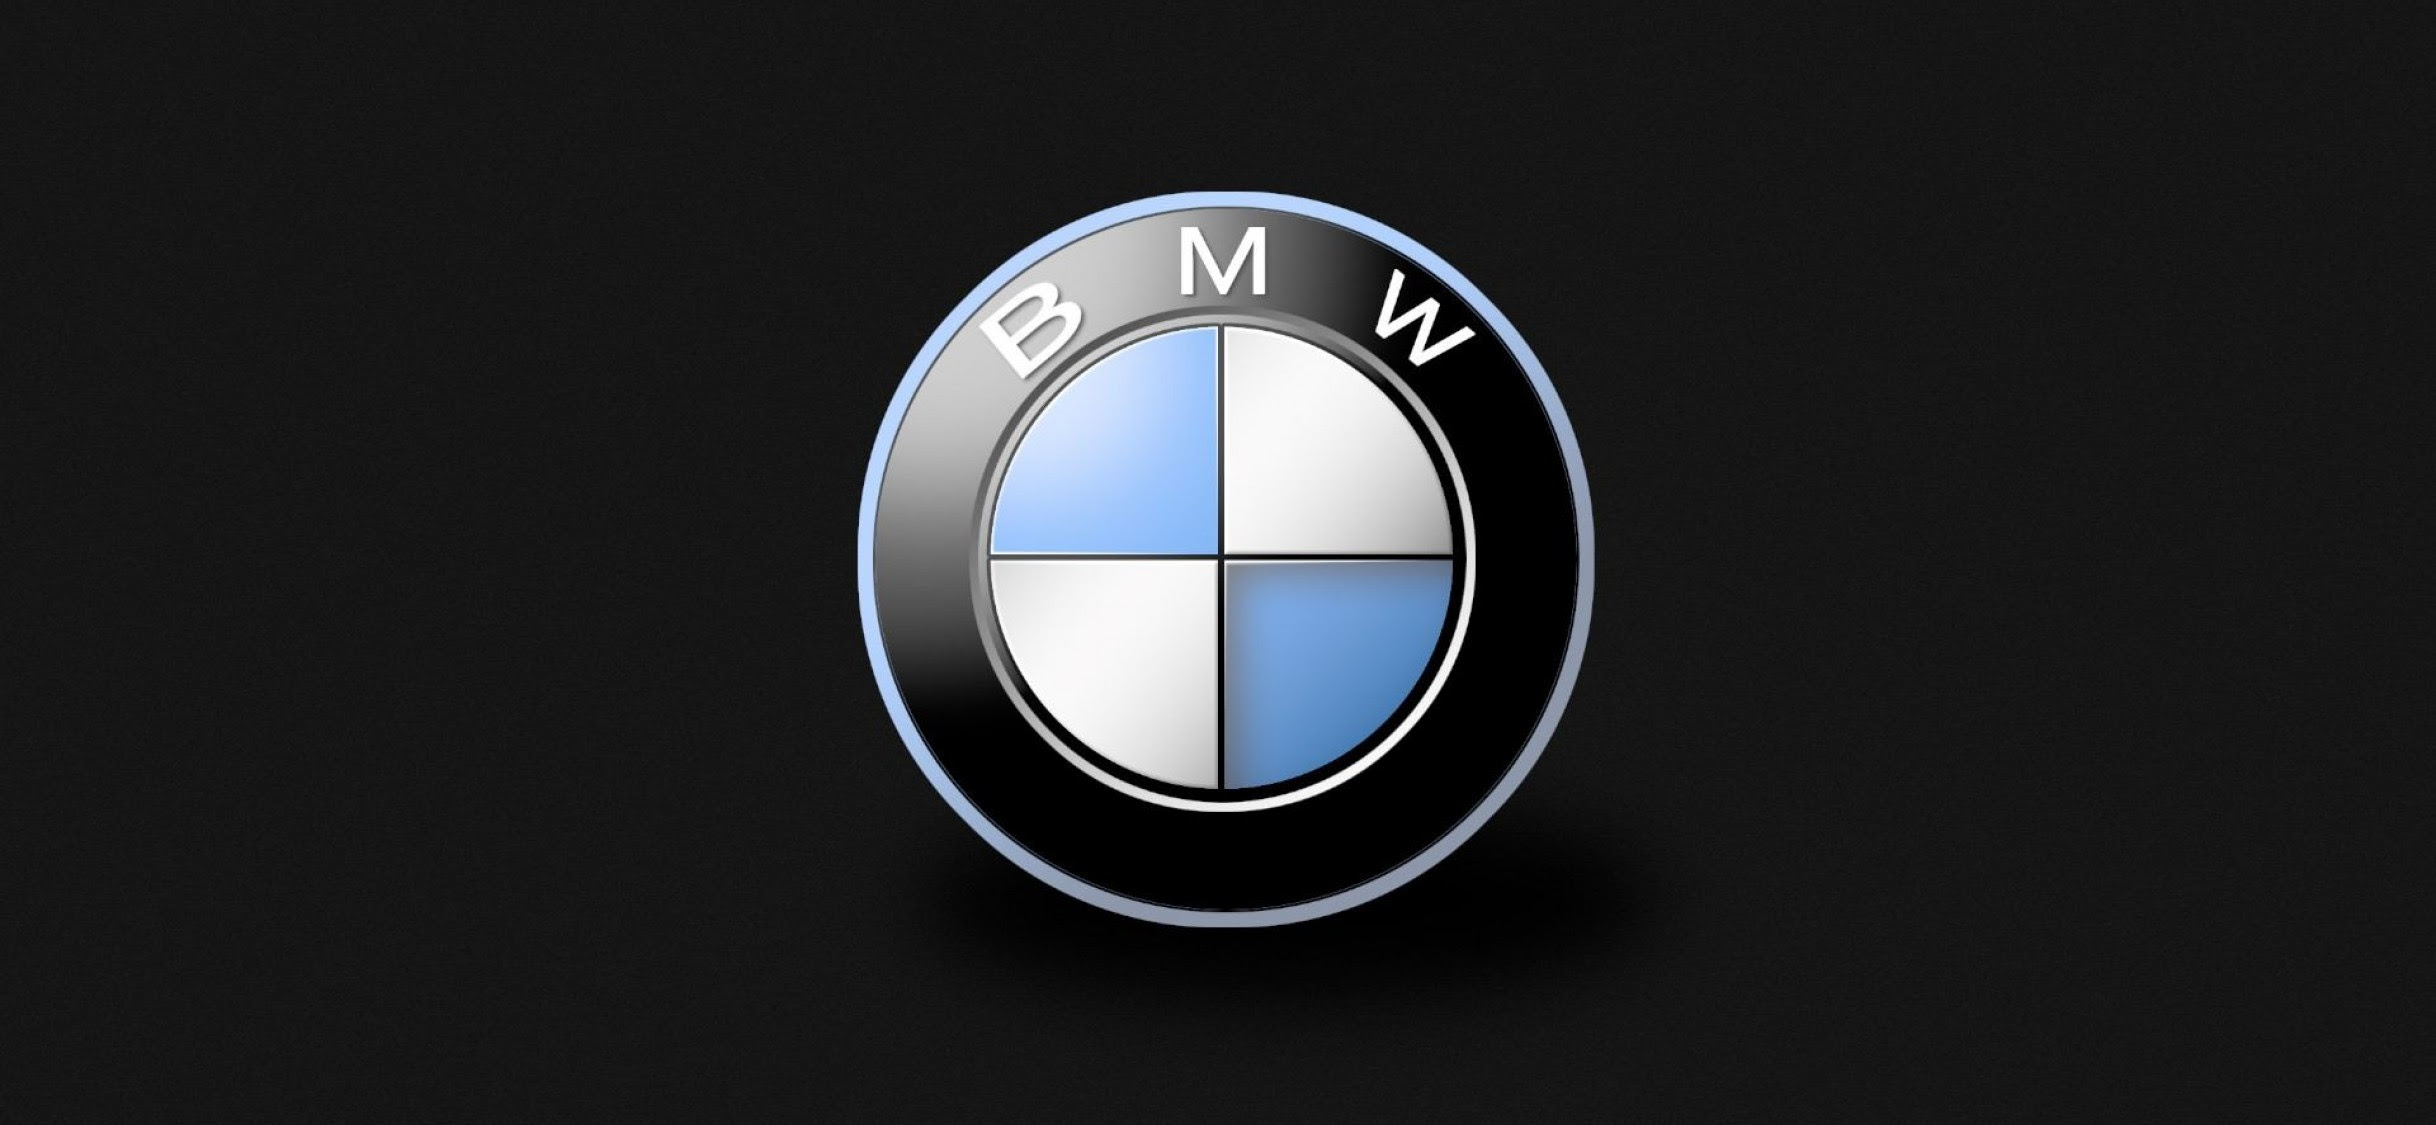 Bmw Logo Background Hd Wallpaper For Desktop And Mobiles Iphone X Hd Wallpaper Wallpapers Net